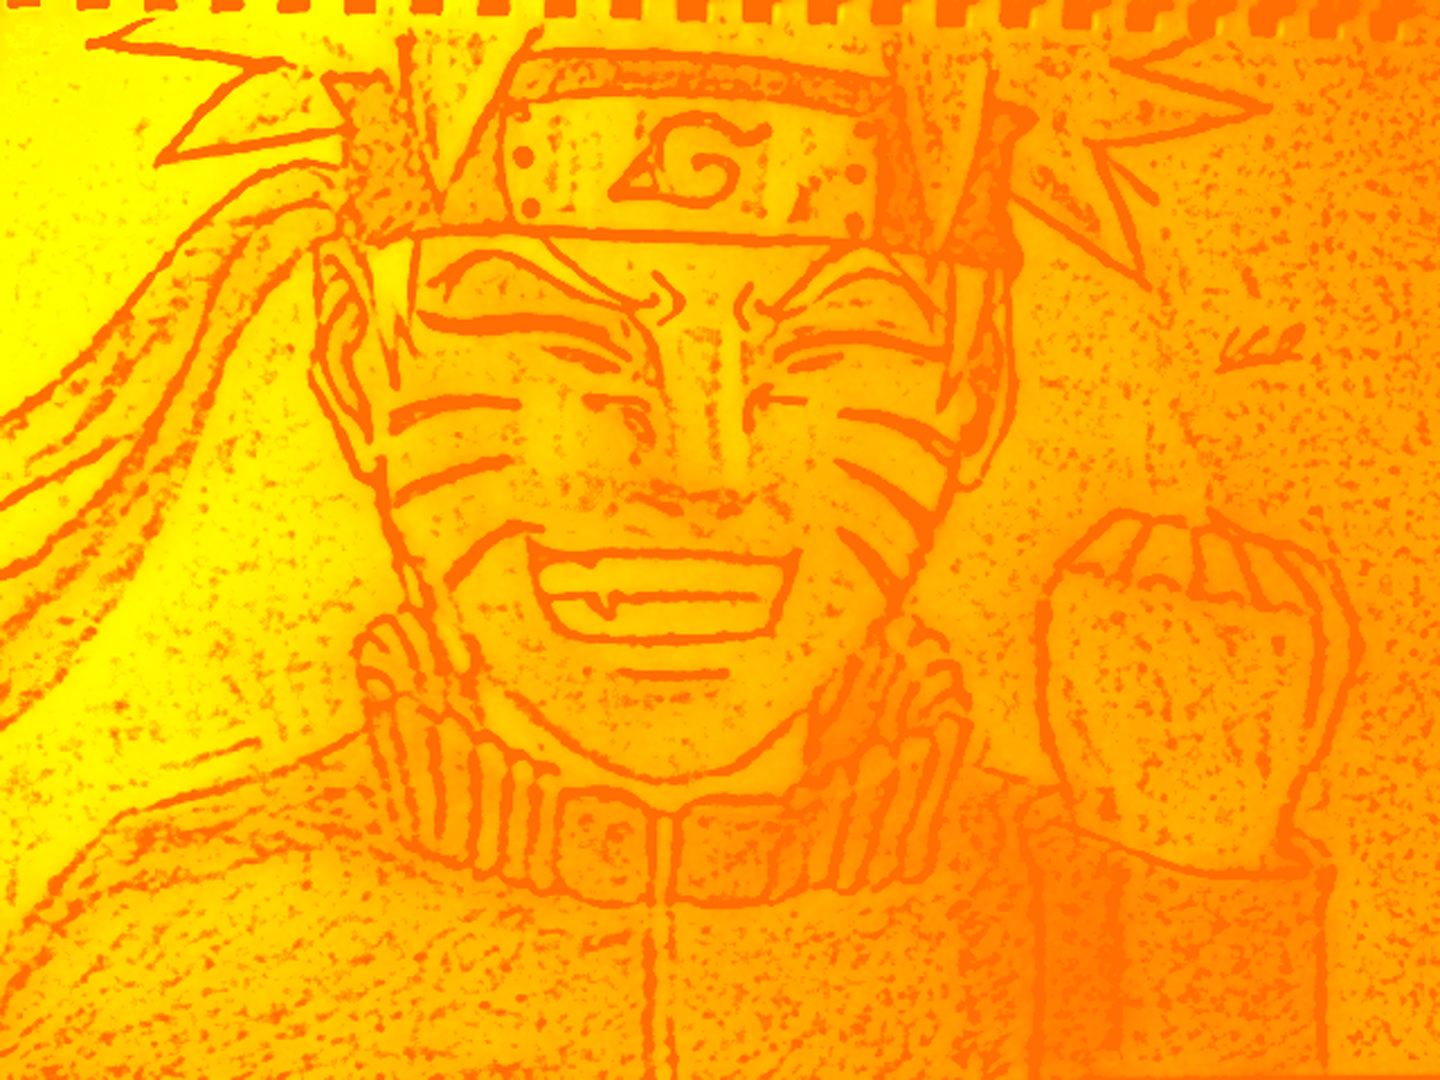 naruto fan art